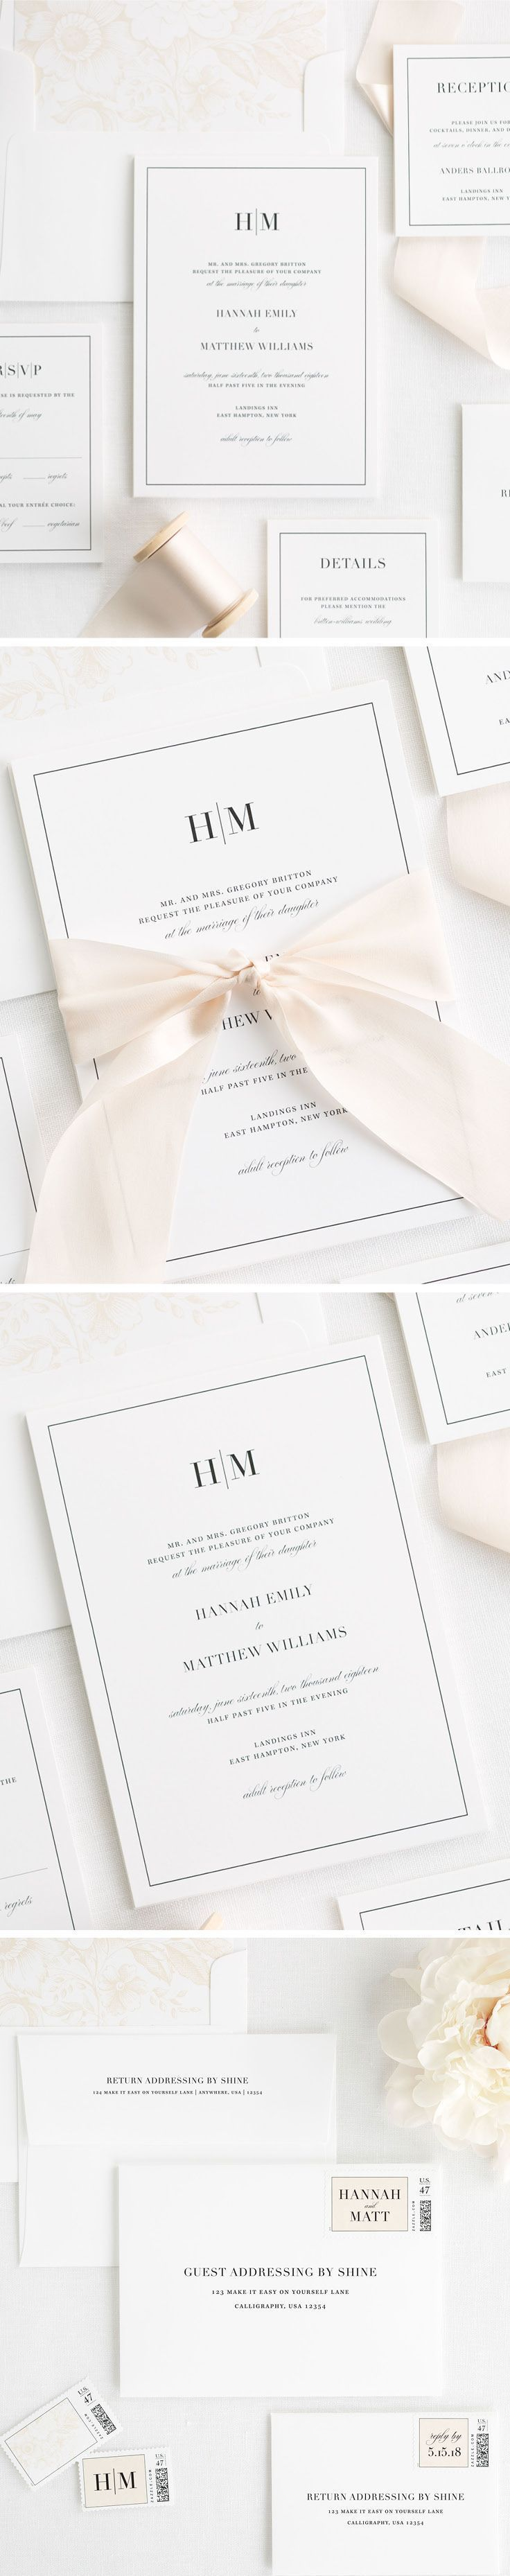 336 Best Wedding Invitations Images On Pinterest Ribbon Wedding